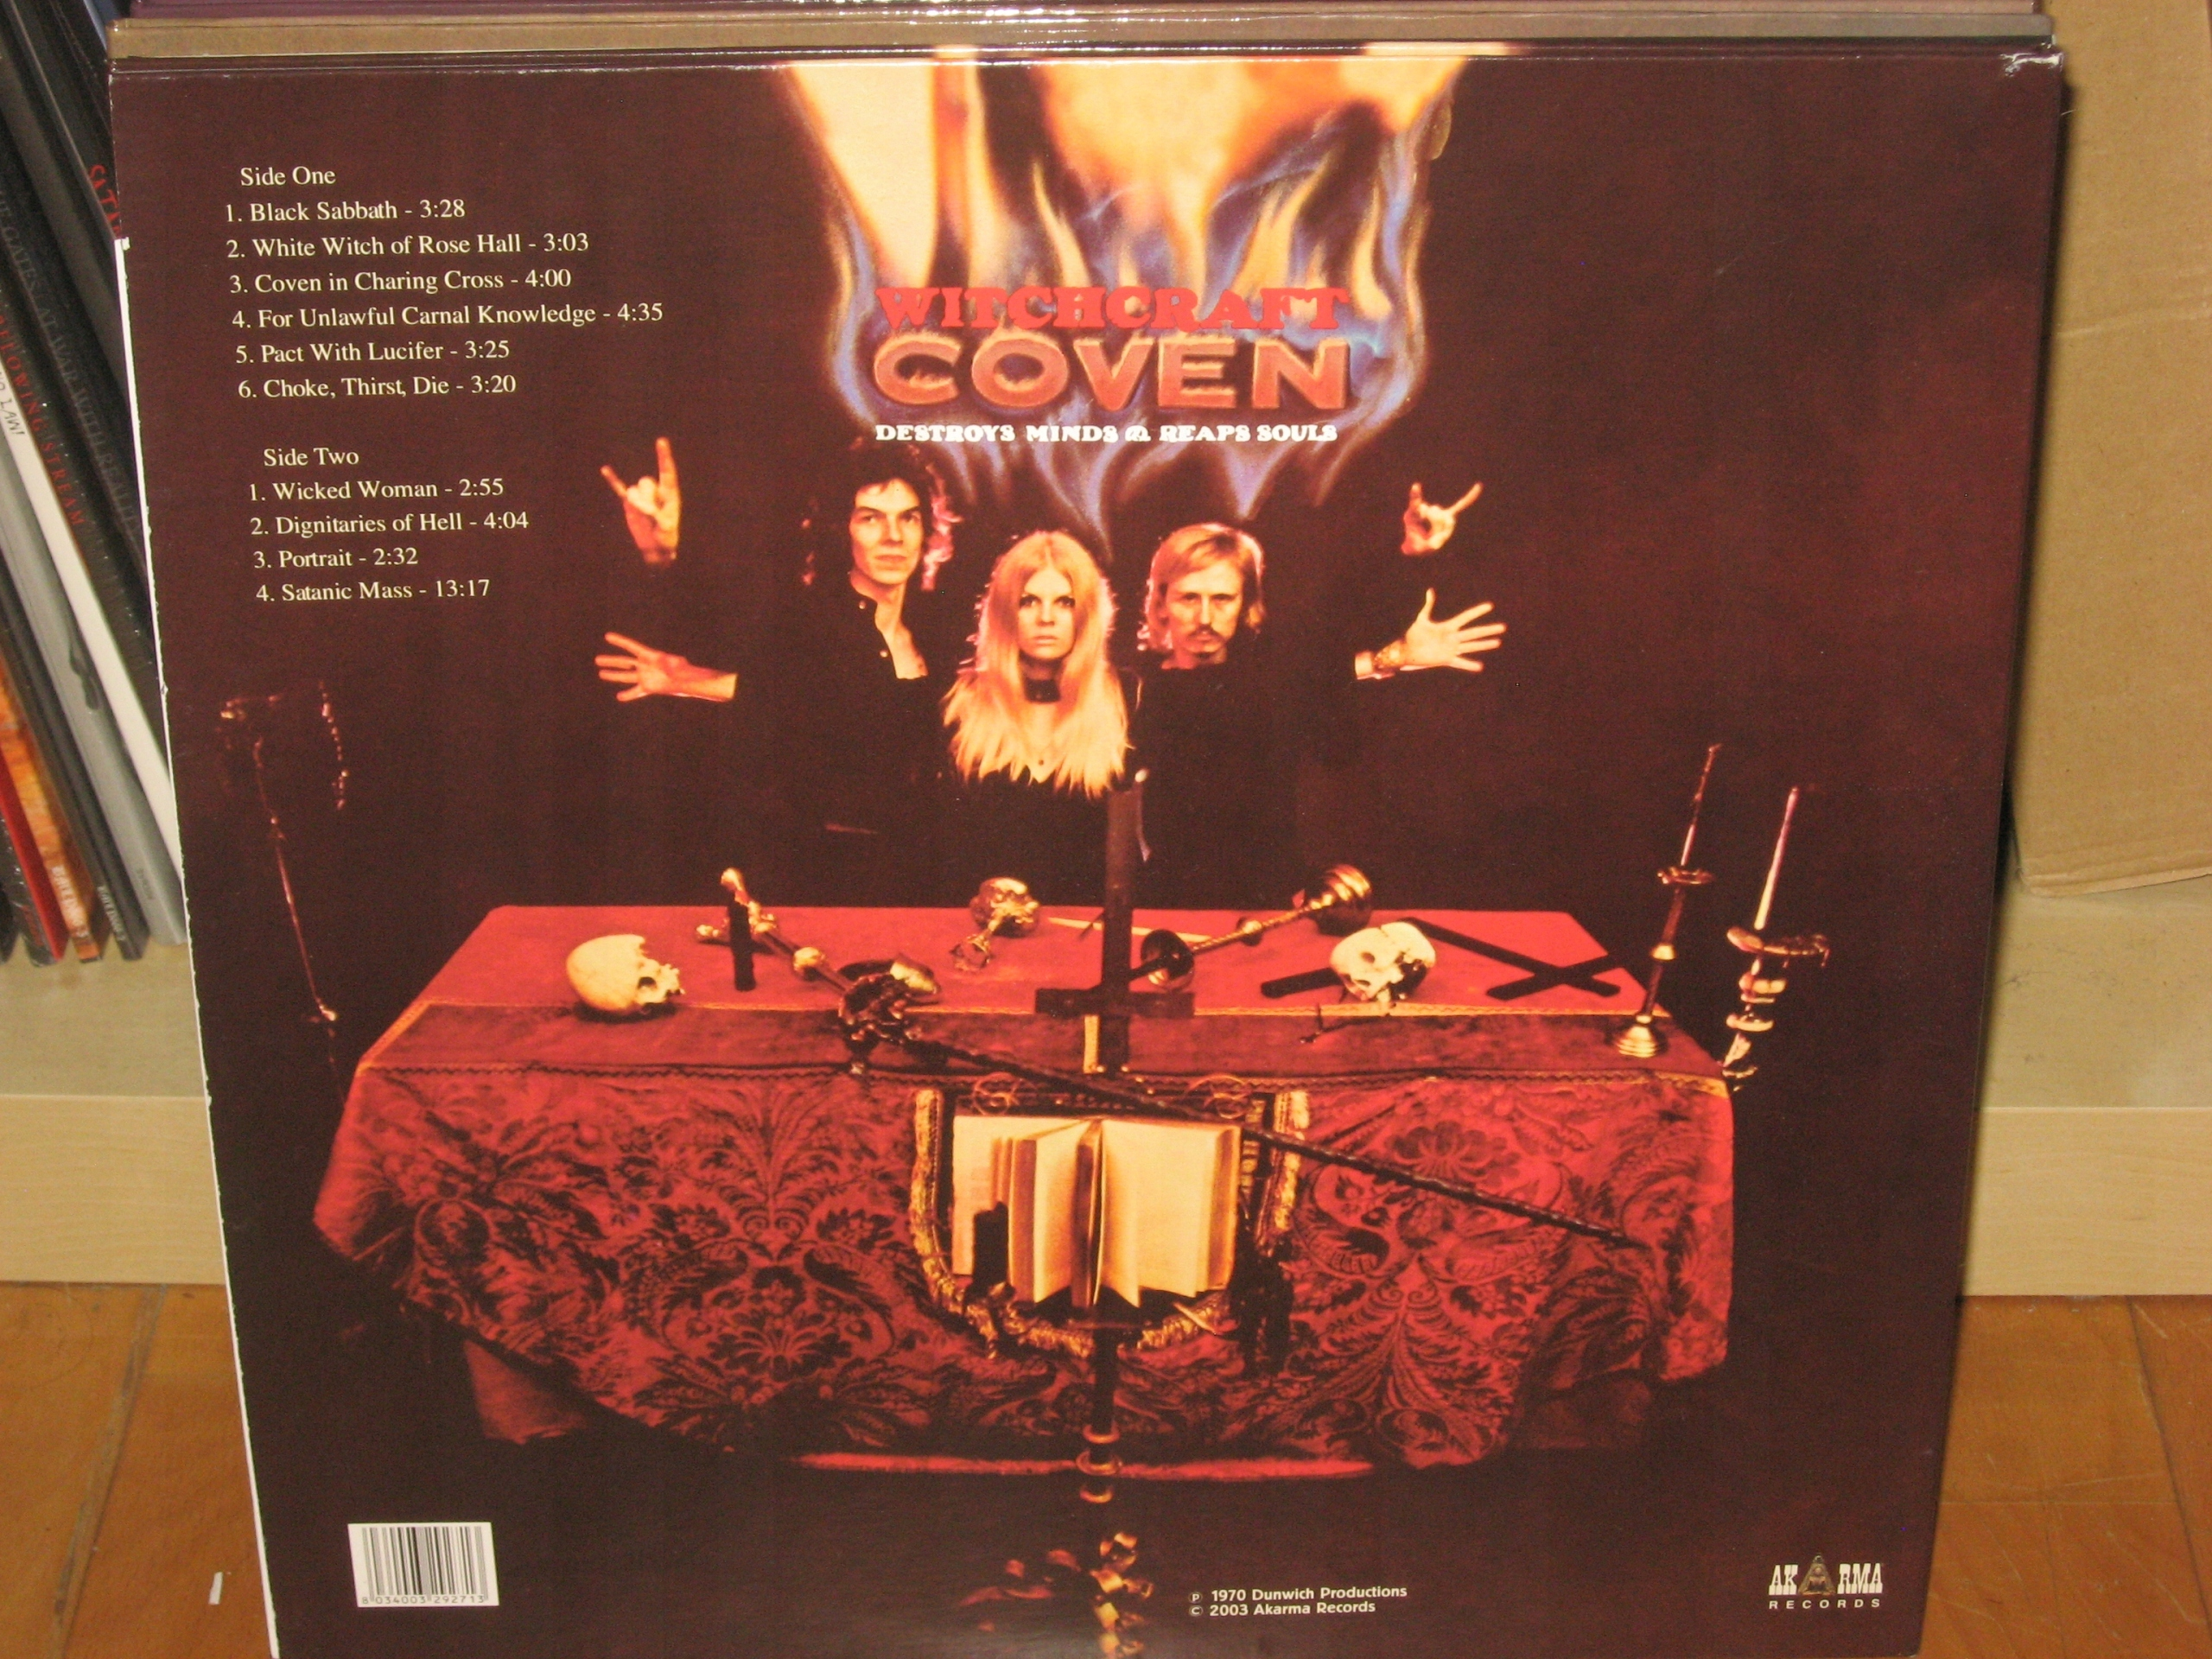 COVEN Witchcraft Destroys Minds & Reaps Souls